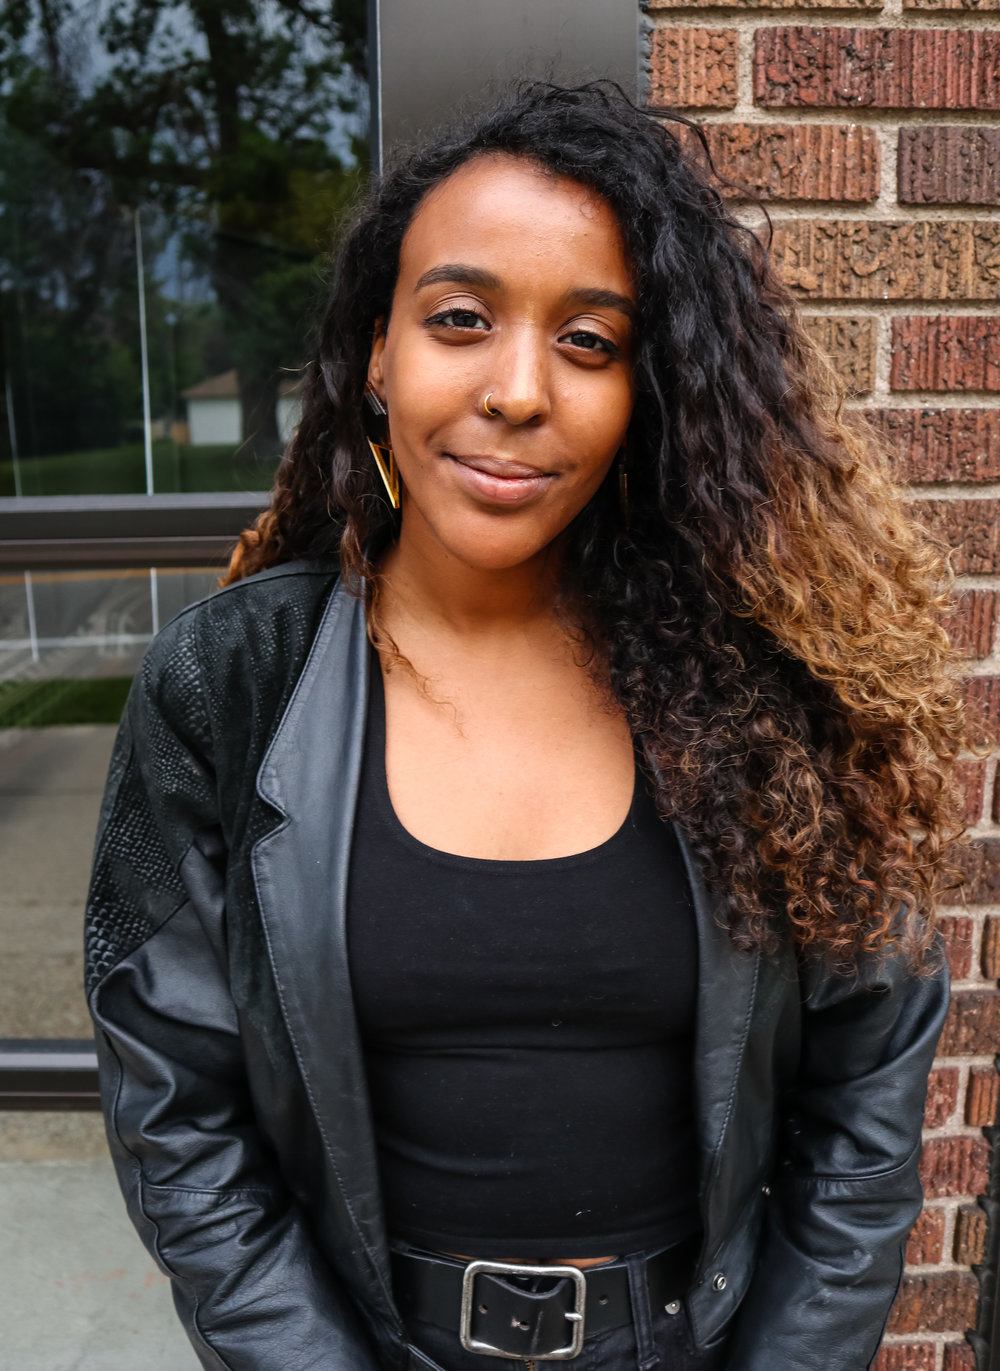 About Your Host - Rahhel is a first generation Eritrean born in the U.S and has lived in Minnesota for most of her life. Rahhel has B.As in Political Science and Finance from the University of Minnesota-Morris. Previously, she worked at the Minnesota Public Interest Research Group as the Economic Justice Organizer and at SEIU 284 as a Union Organizer. She currently is the Co-Founder and Program Director of the Minnesota Youth Collective, an organization that amplifies the voices of young people and their needs in politics. Throughout her career, she has paid special attention to organizing with young people of color without co-opting their movements and their ideas.